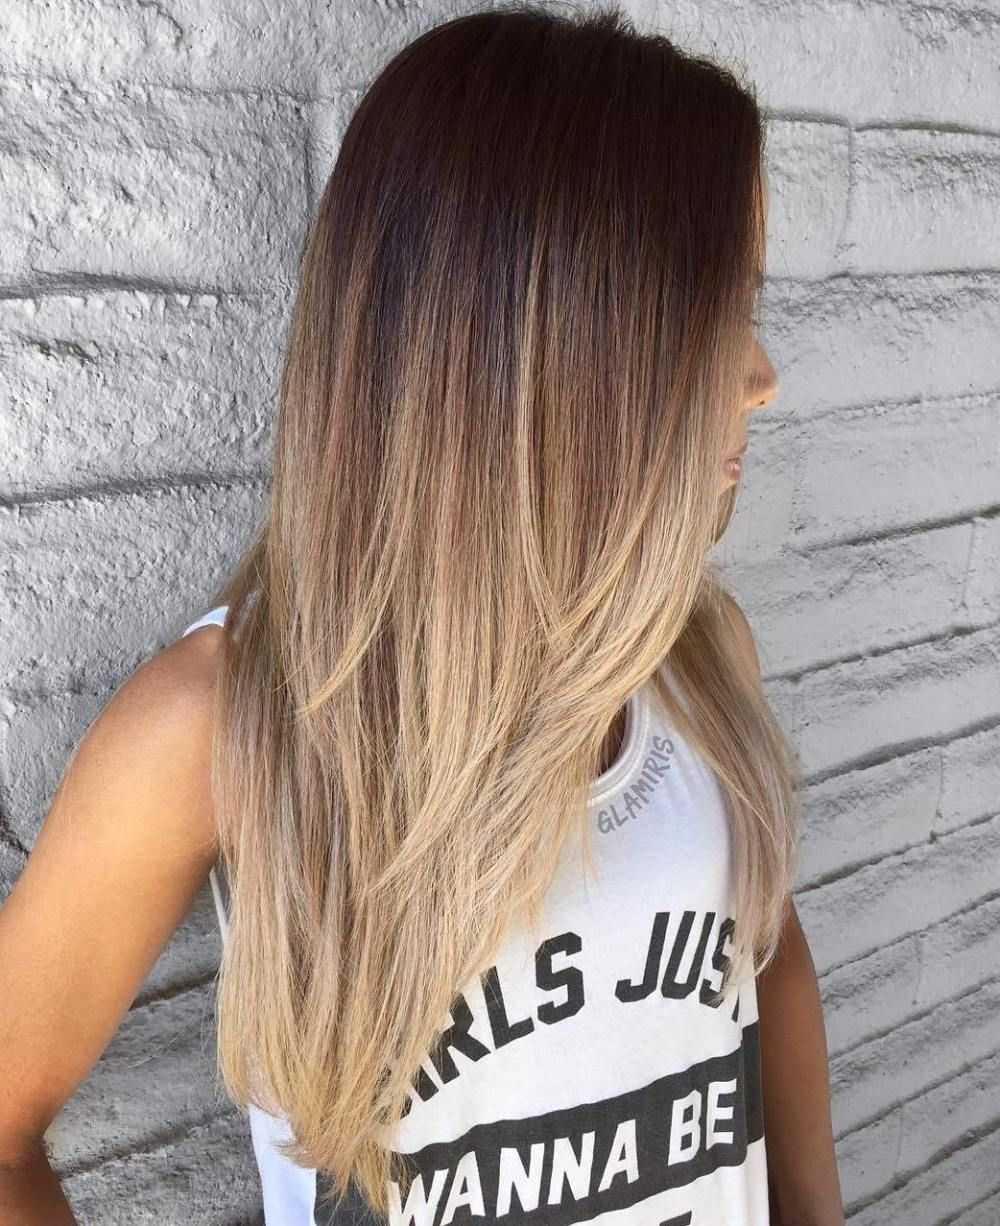 51 blonde and brown hair color ideas for summer 2019 | hair & beauty